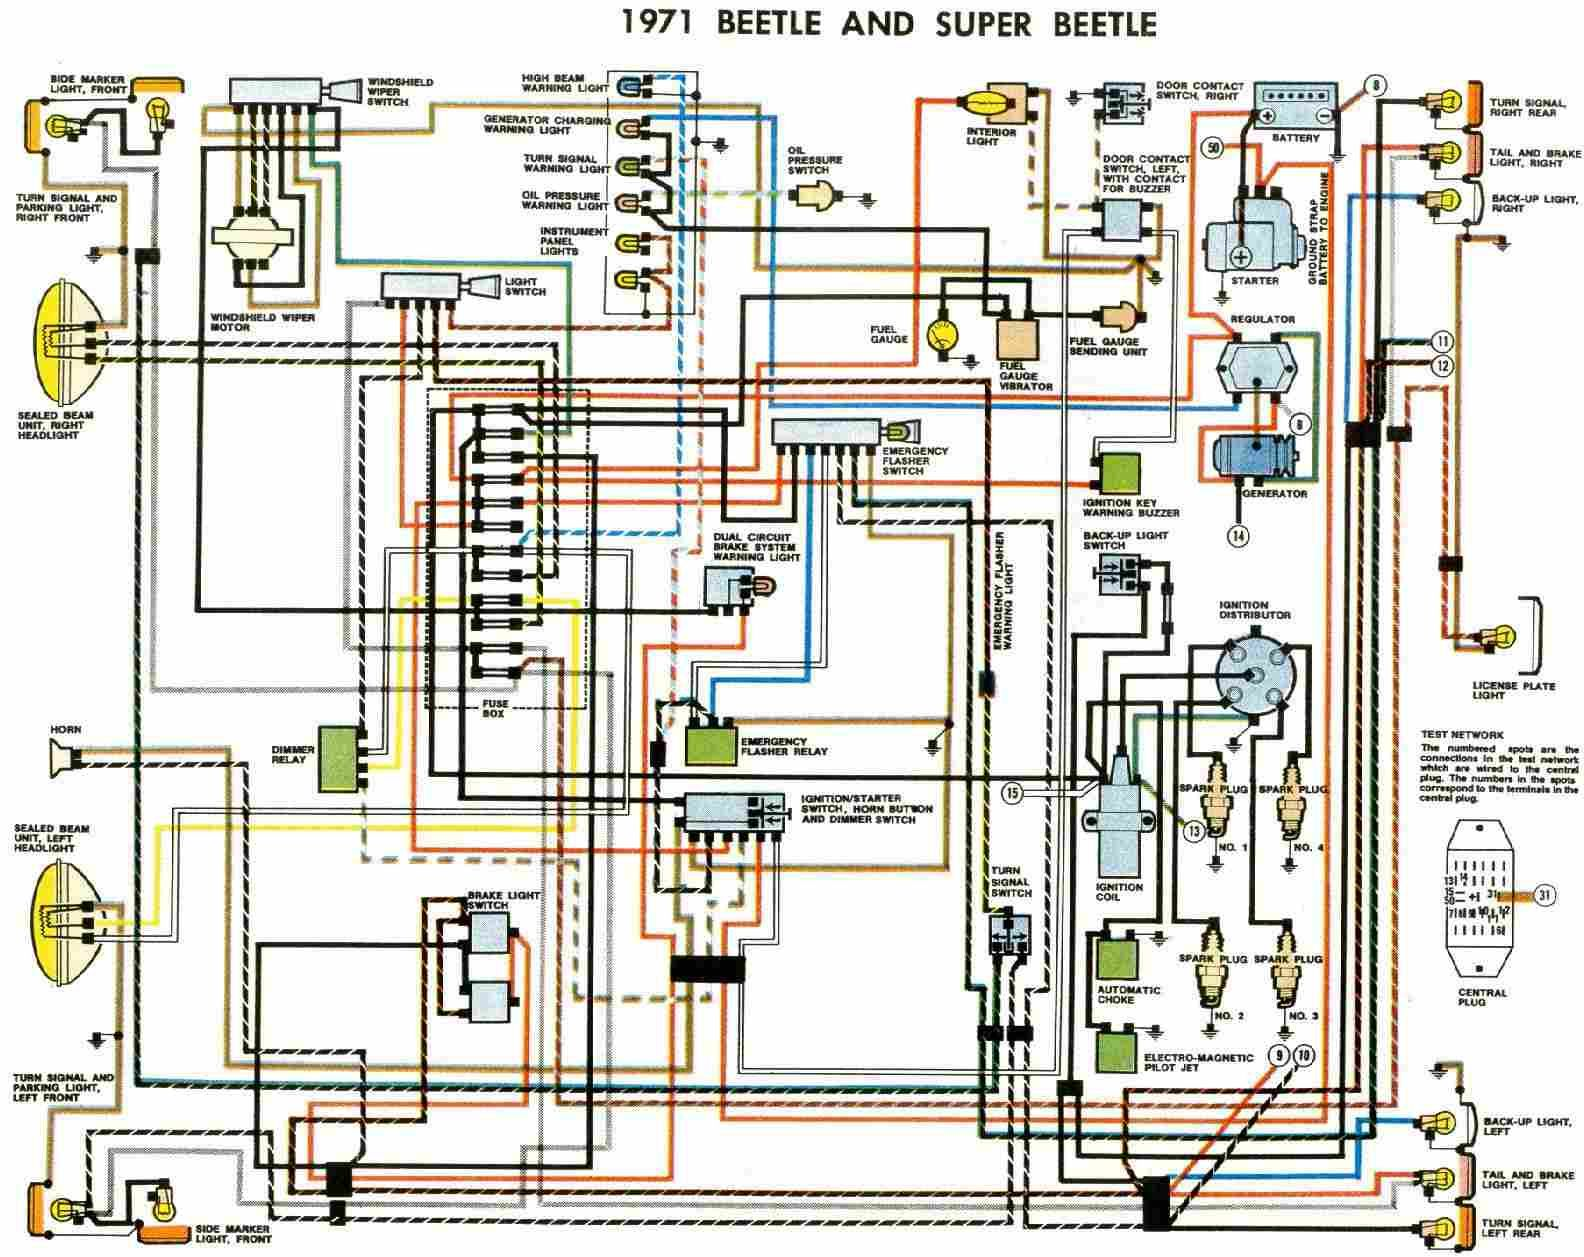 6379f2a777a0eb1b27fdba46670ceb6a free auto wiring diagram 1971 vw beetle and super beetle byocar 1971 vw bus wiring diagram at cos-gaming.co